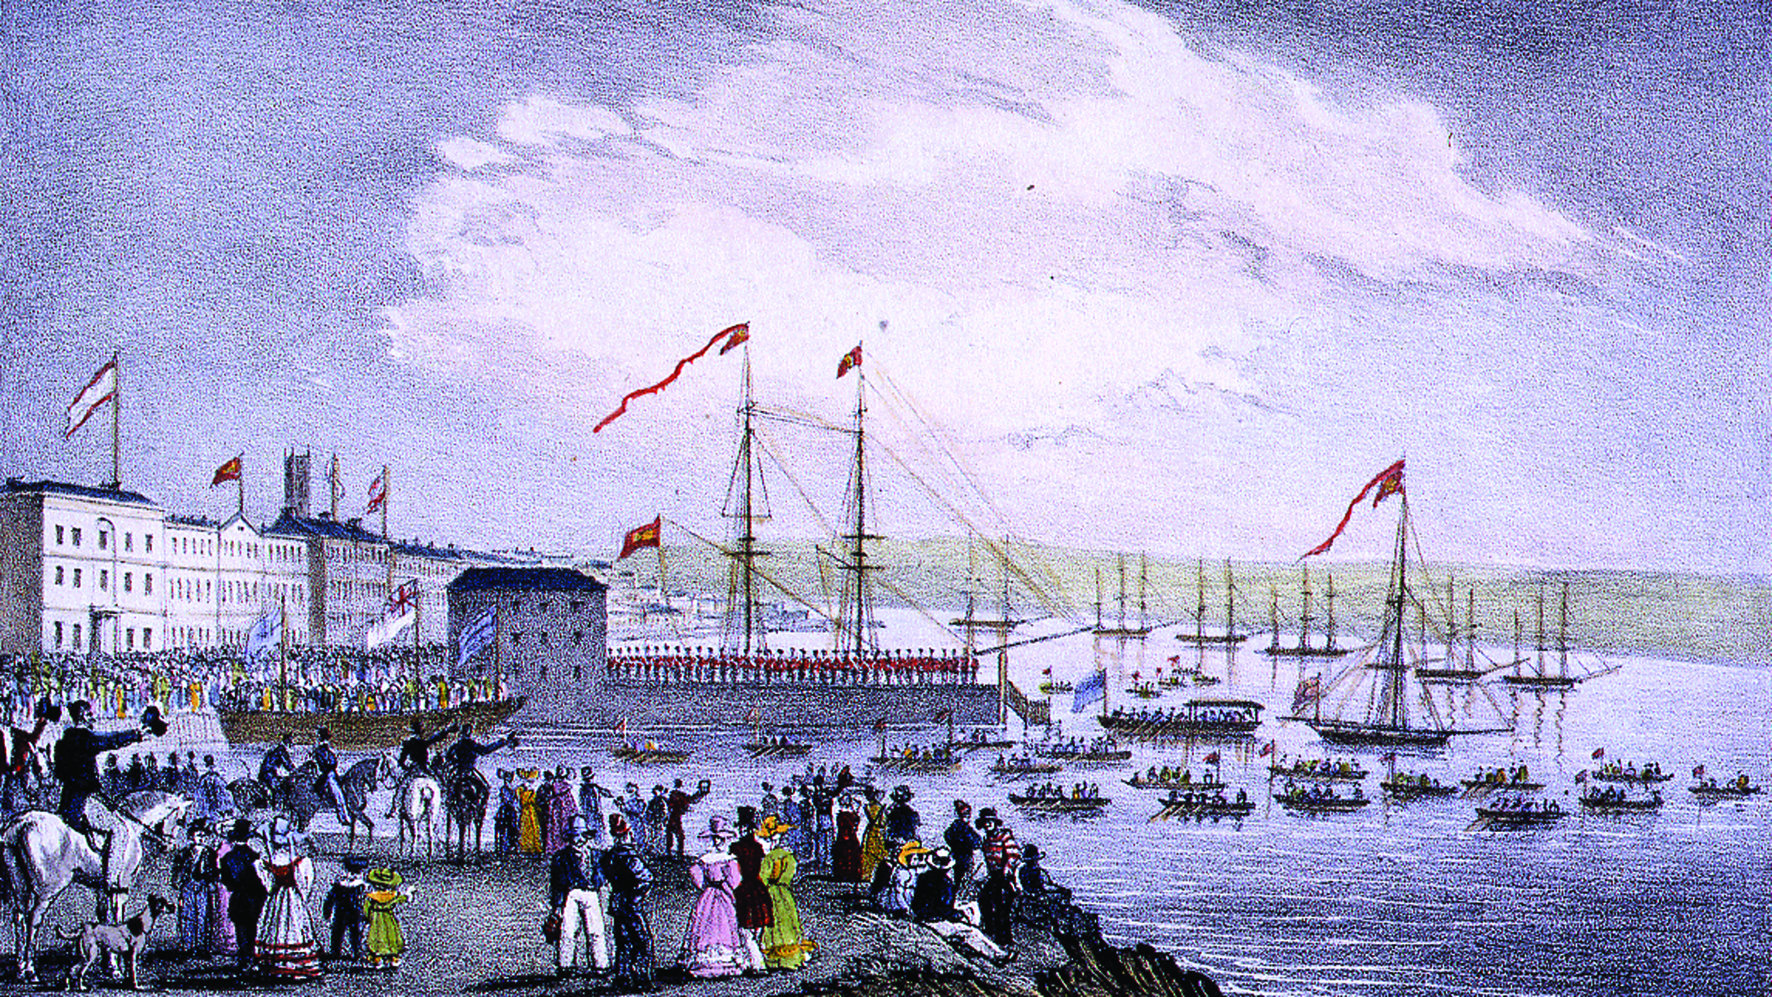 The Landing of Dona Maria II Queen of Portugal at Falmouth,